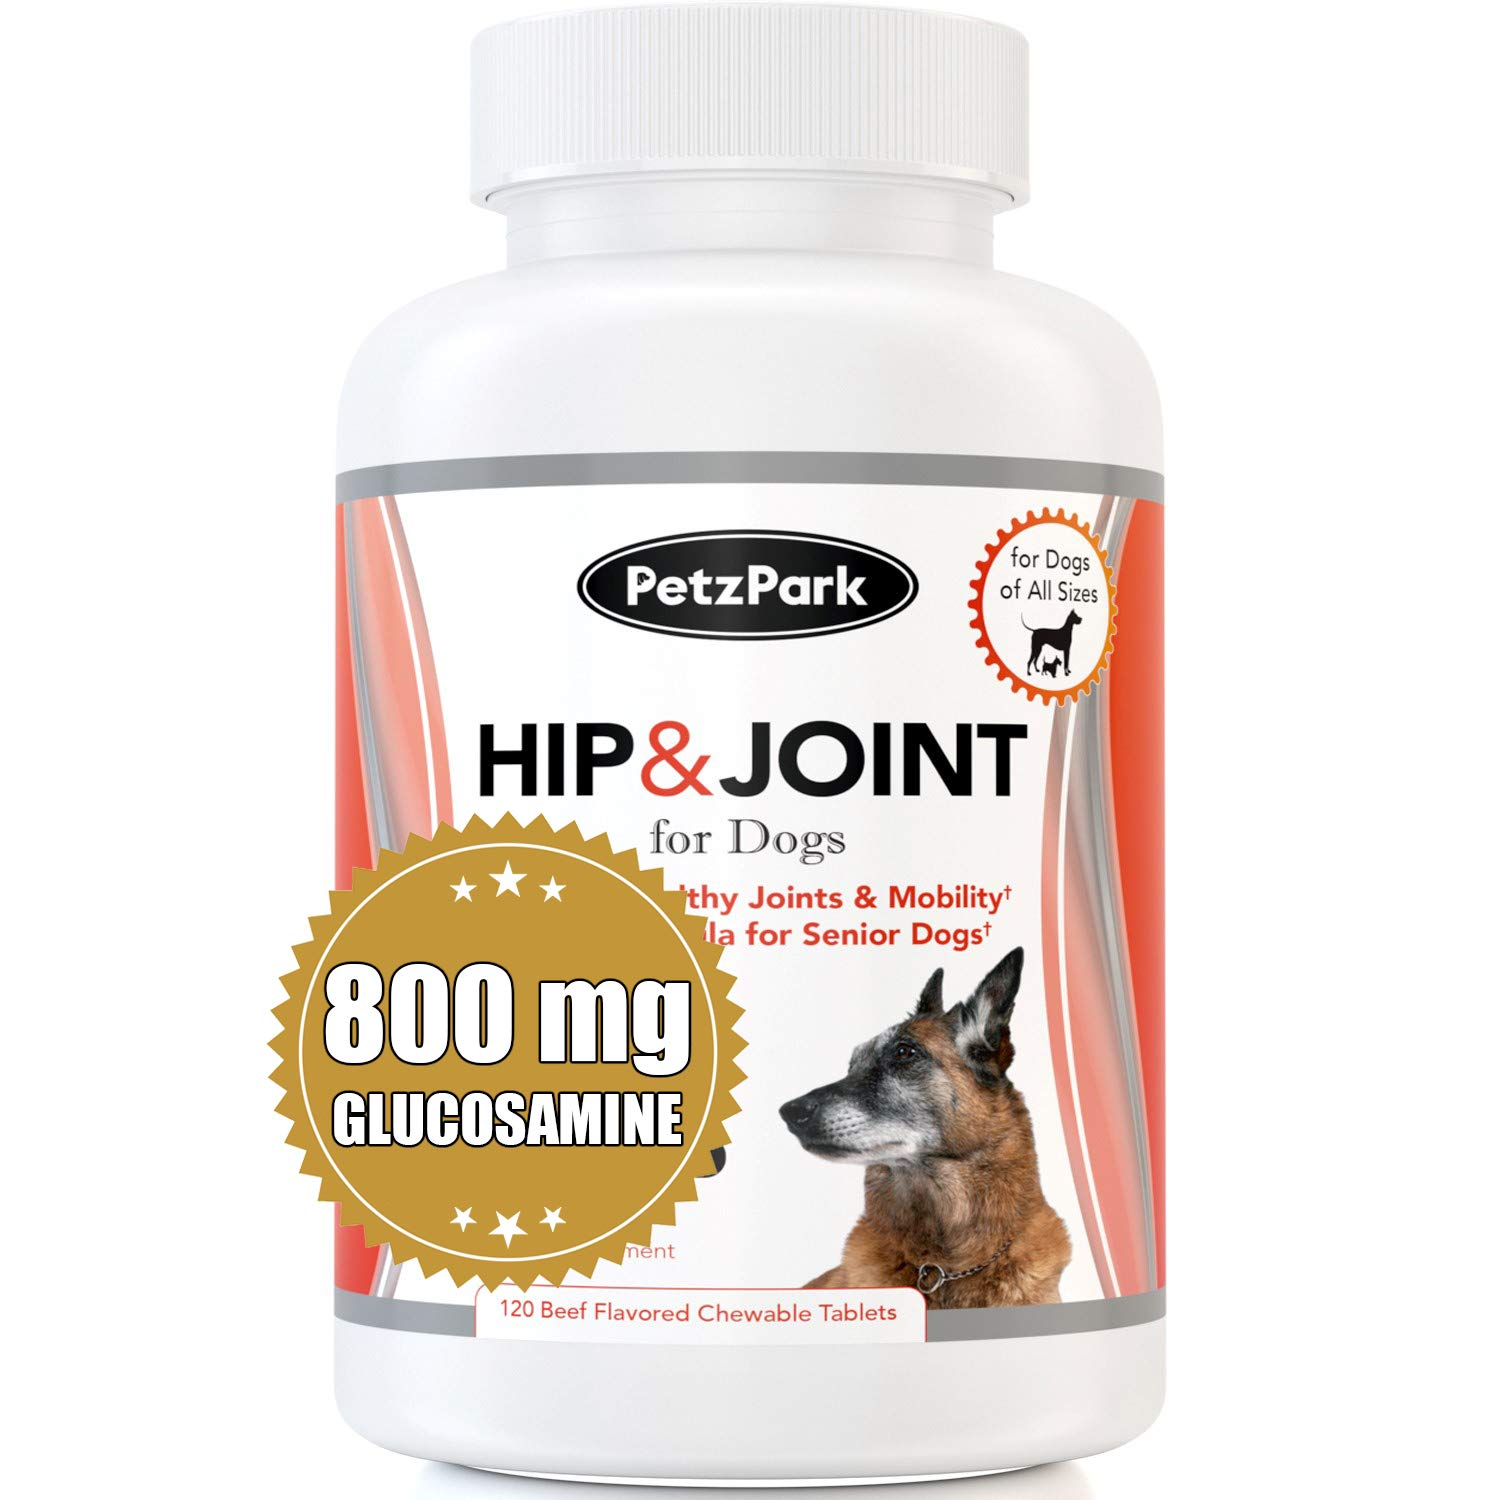 Glucosamine for Dogs Chondroitin MSM - Hip and Joint Support for Dogs of All Ages, Breeds and Sizes - Arthritis Pain Relief Formula 800mg - Extend Joint Care Supplement for Dog - 120 Chewable Tablets